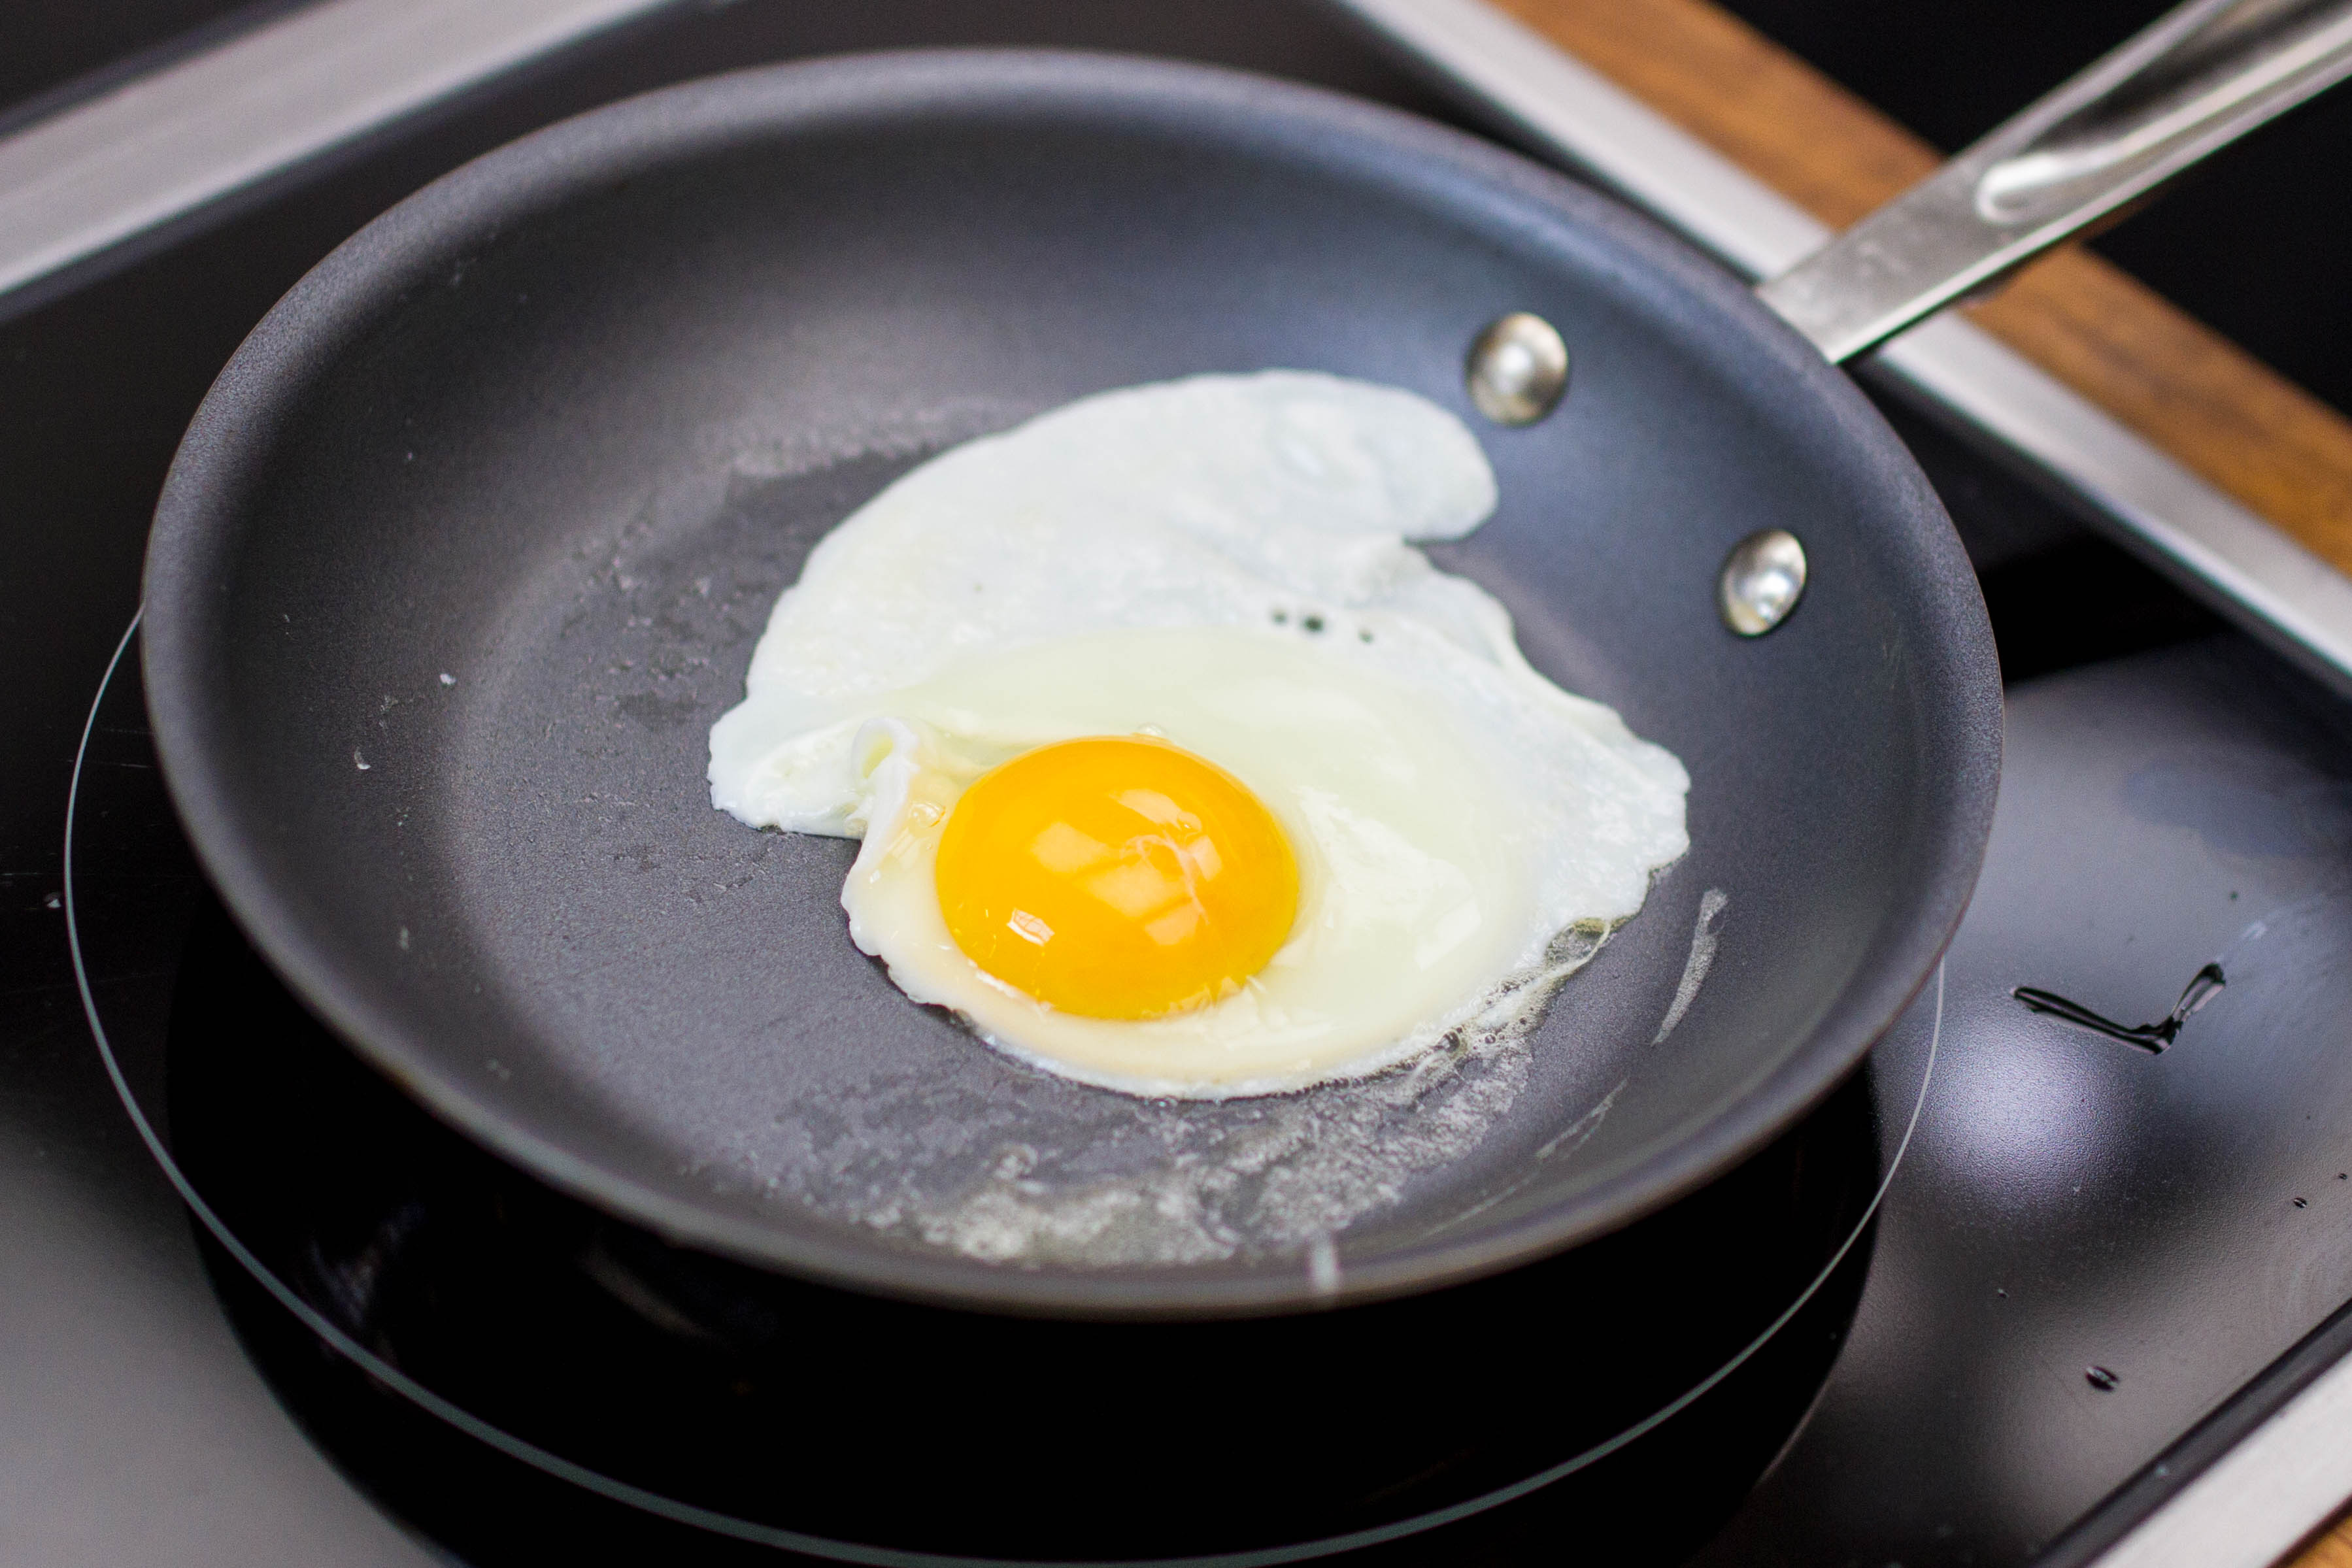 You're Not Looking For Crispy Edges—you Want A Gently Cooked Egg With